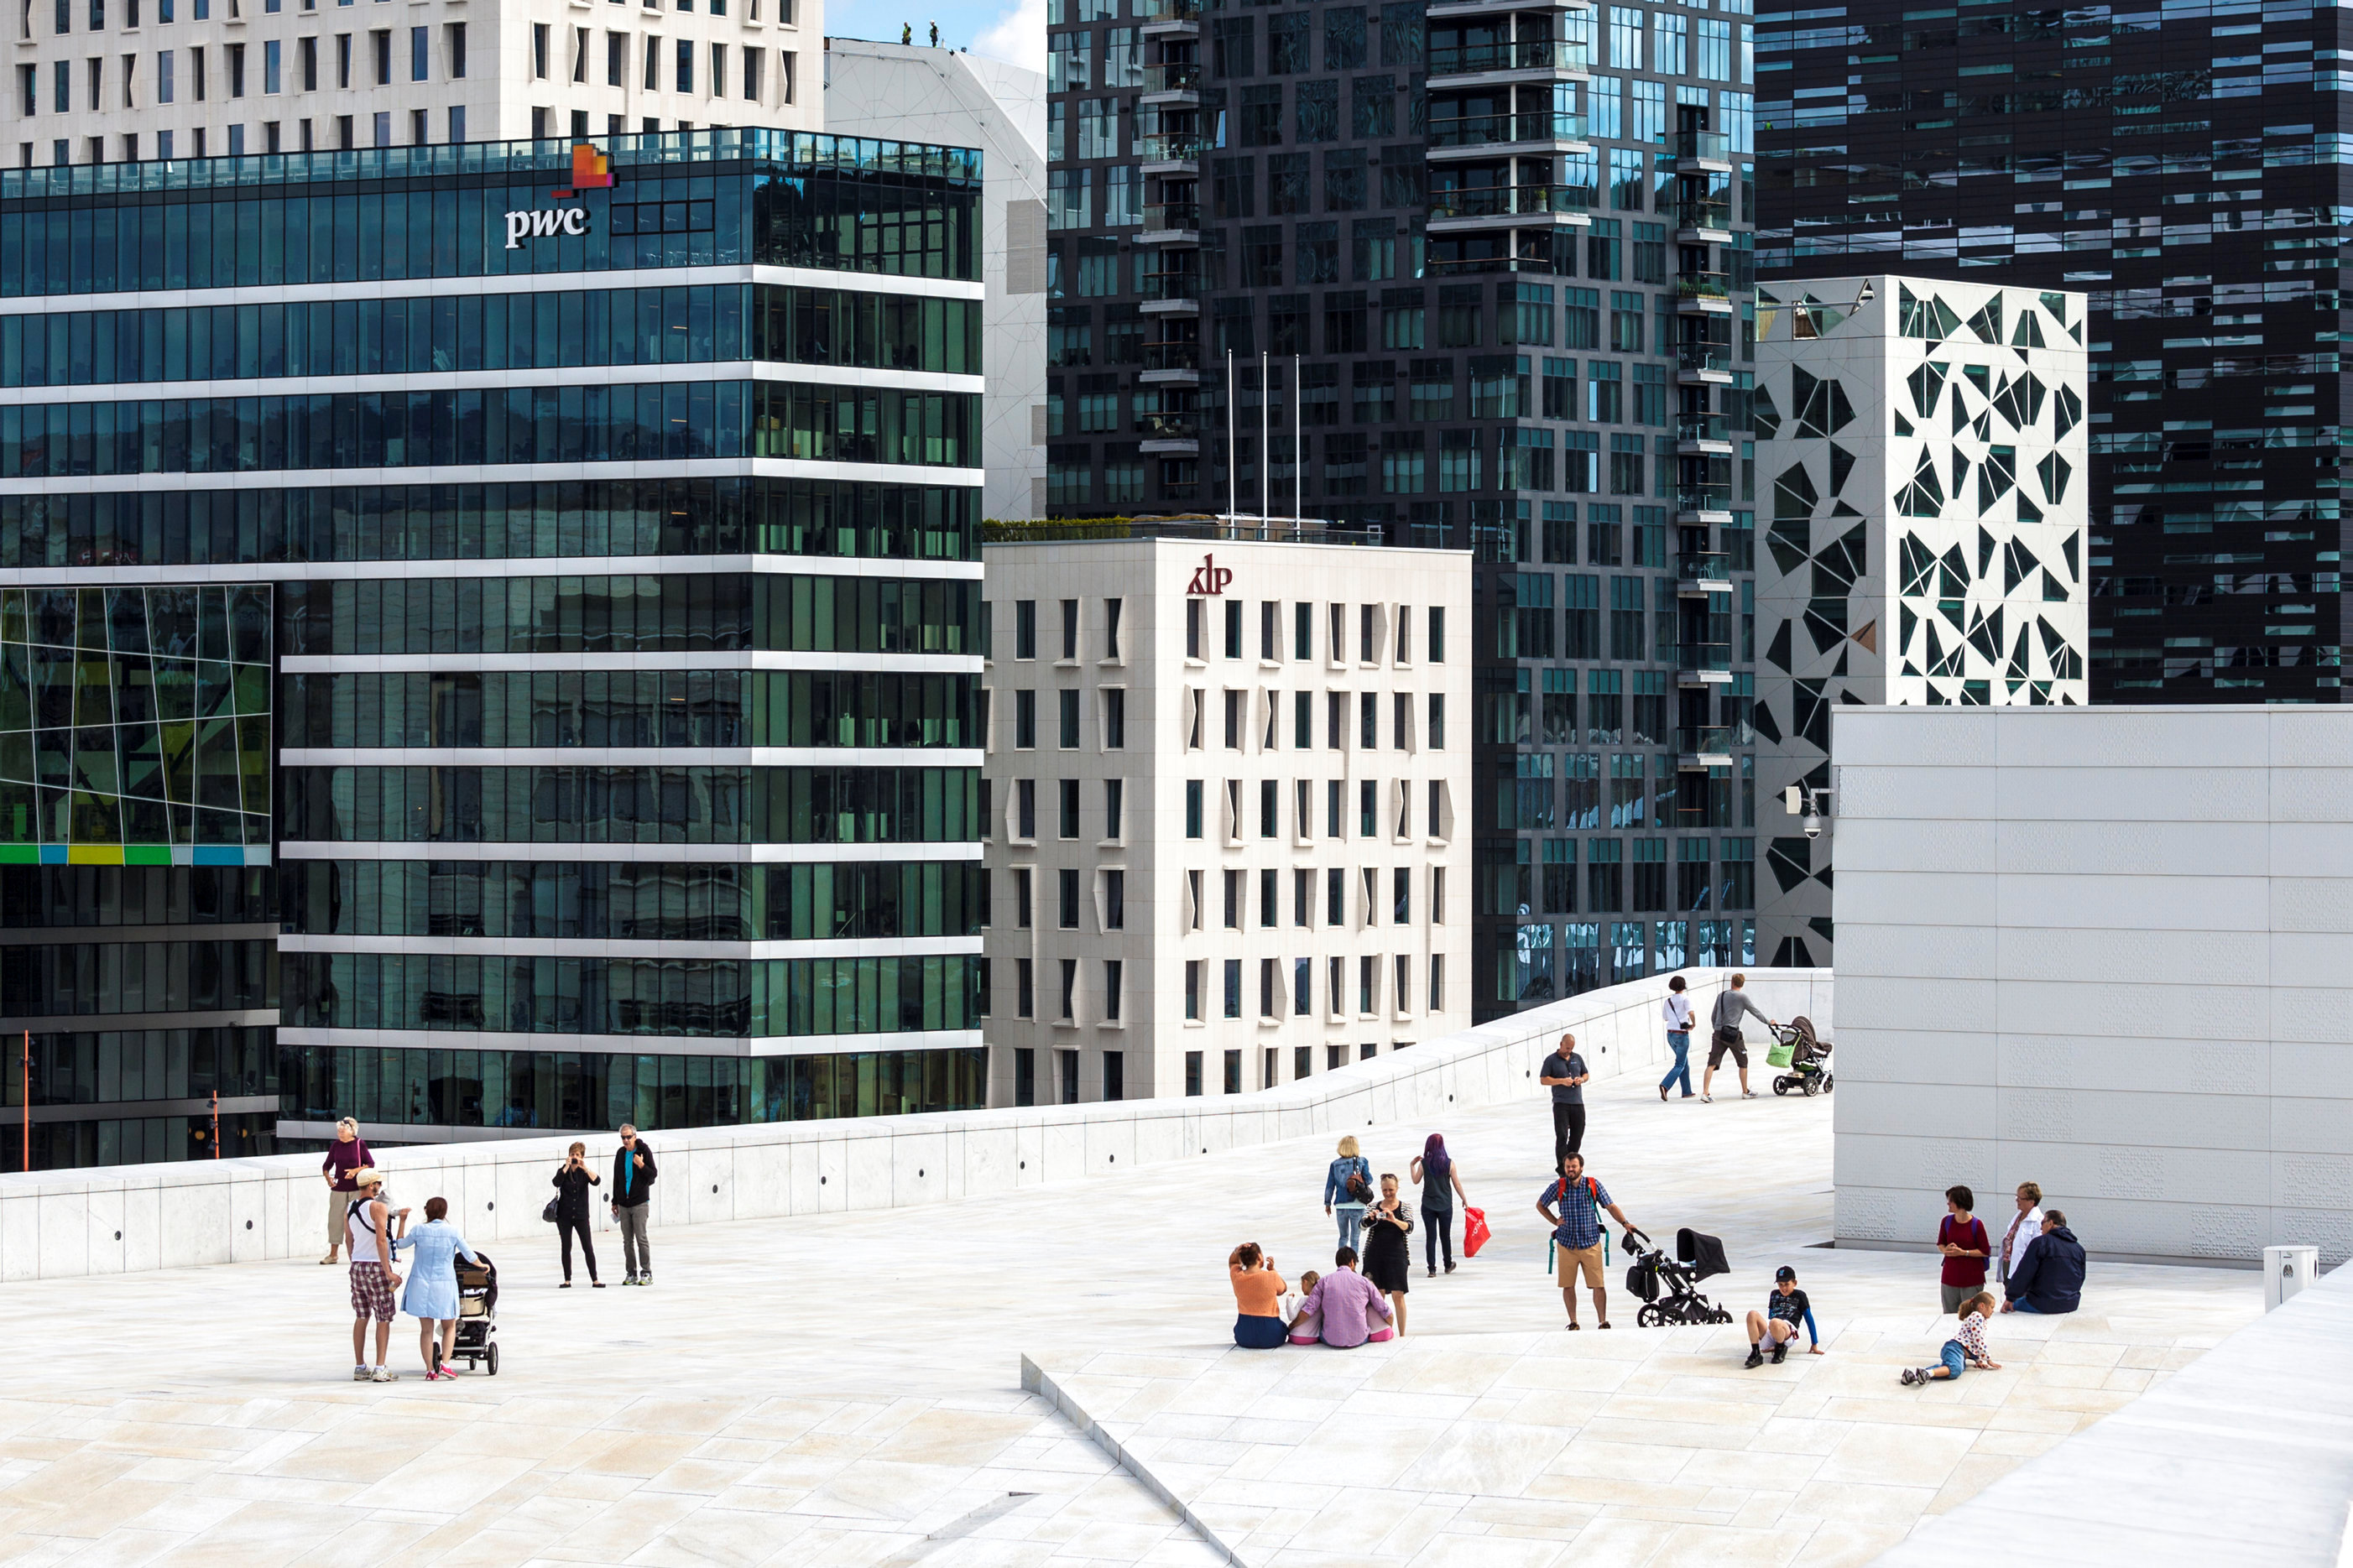 People stand on the roof of the Opera House, with buildings of The Barcode Project in the background, in Oslo, Norway